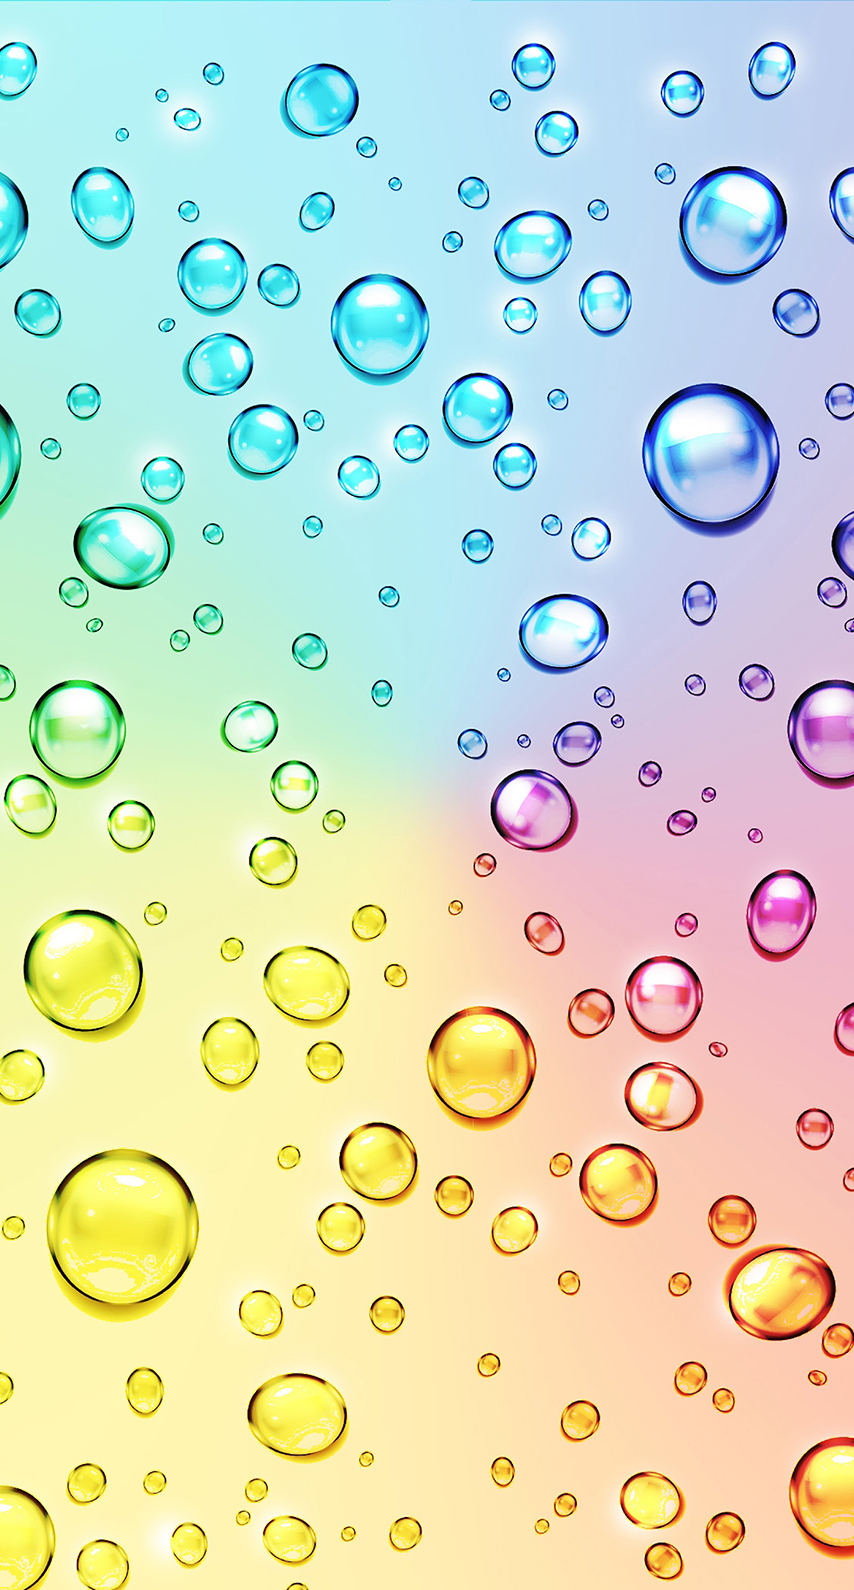 soccer, game, dew, round, ball, bubble, wet, clear, clean, purity, droplet, h2o, liquid